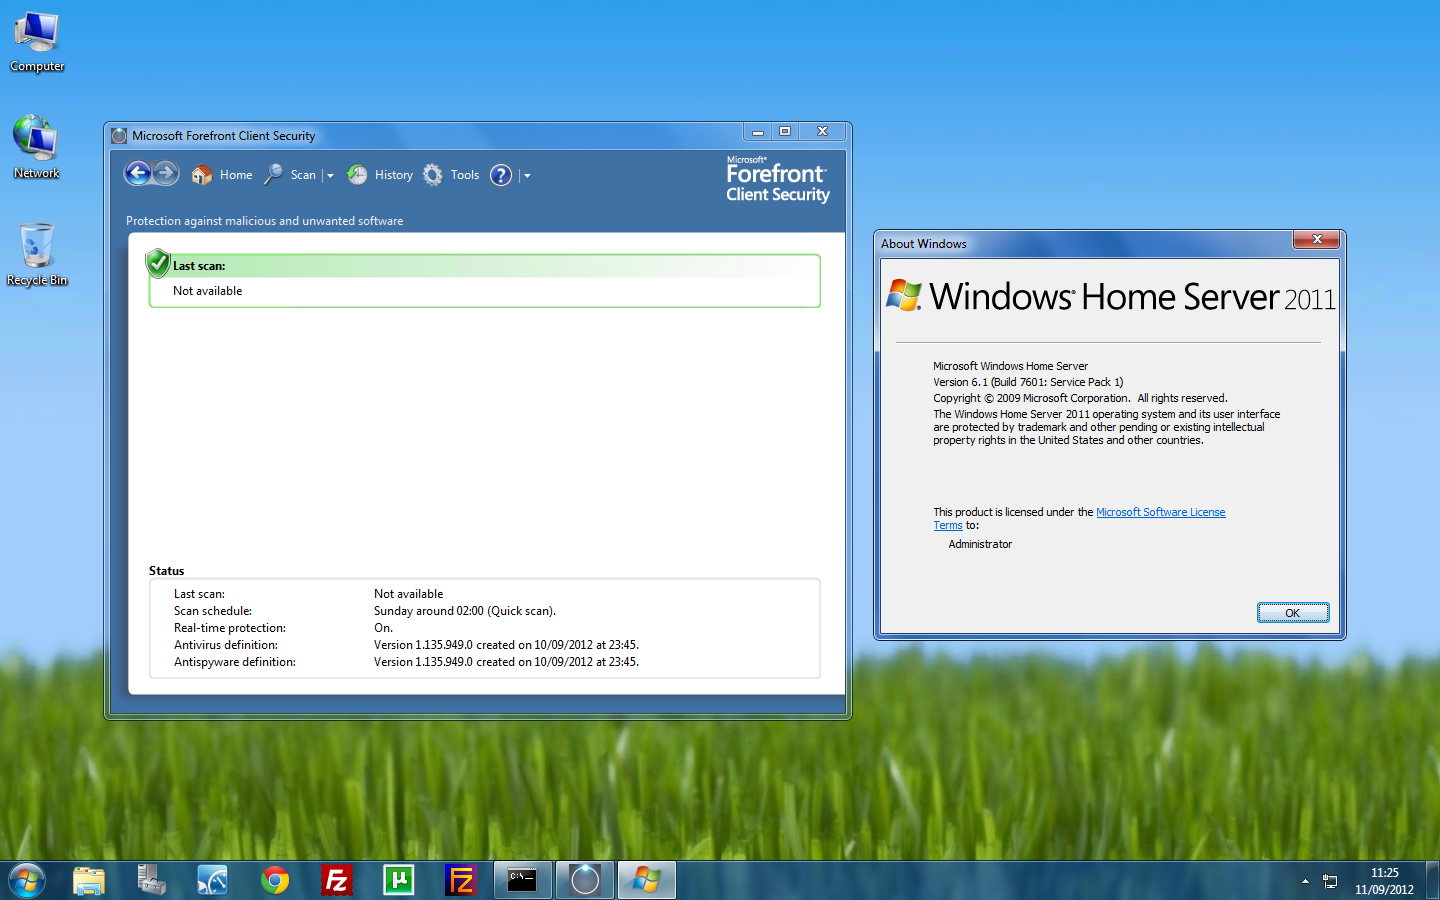 Forefront Security on Windows Home Server 2011